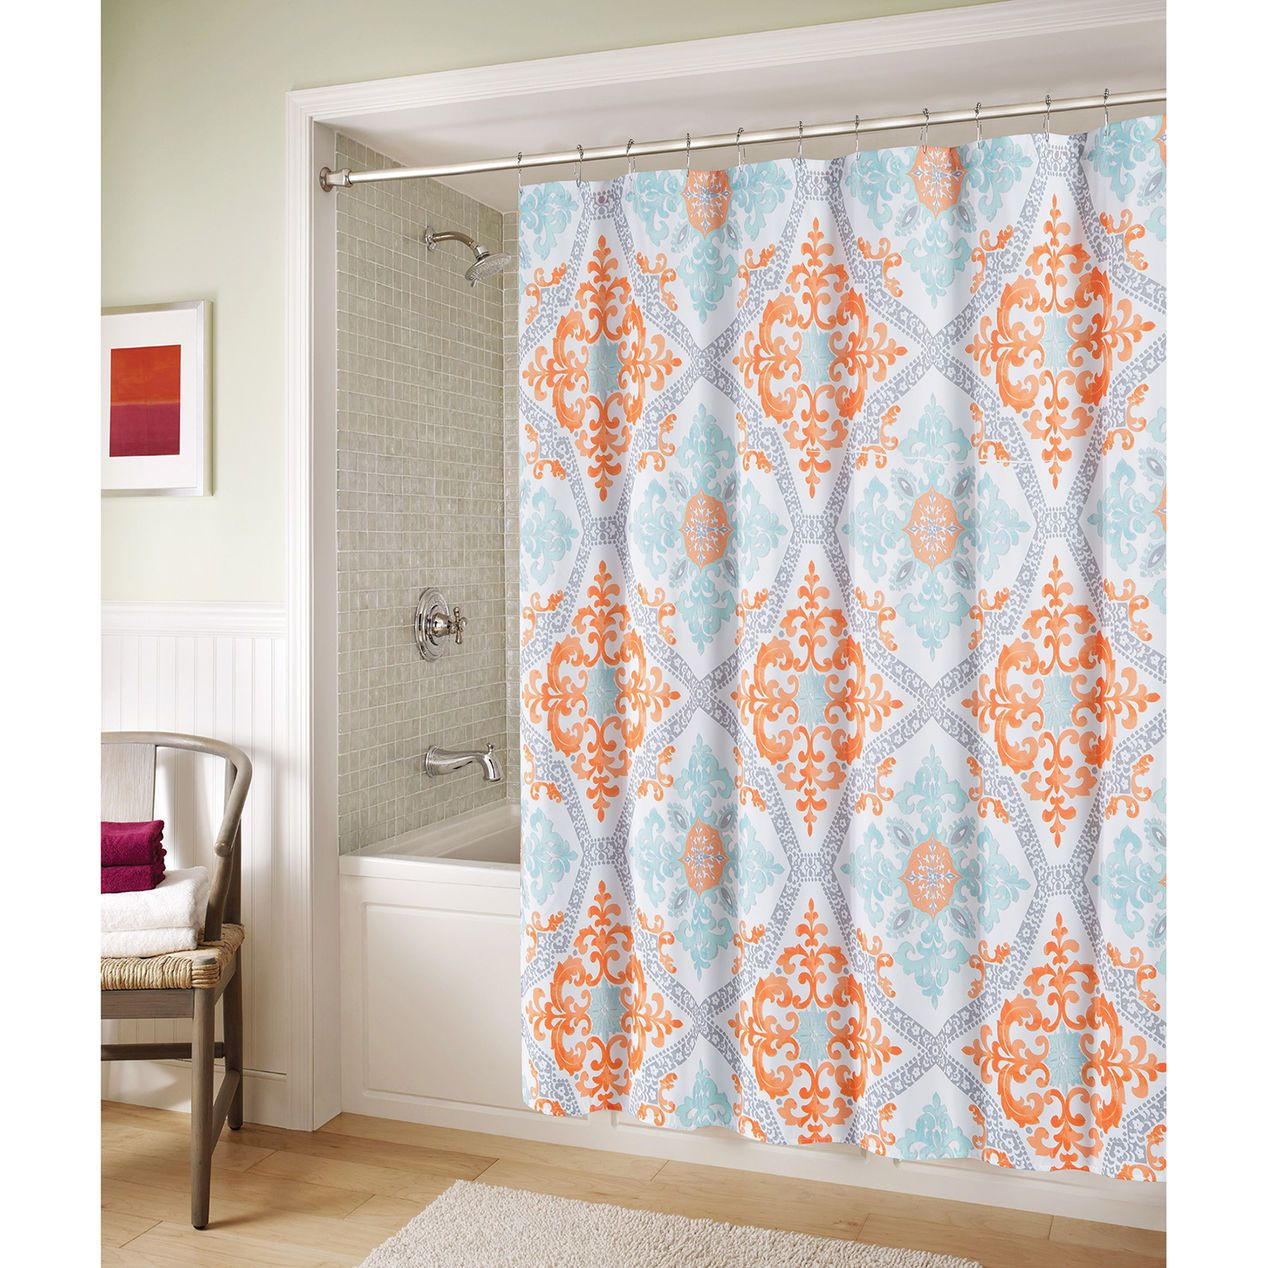 coral and blue shower curtain. Blue and Orange Marcone Shower Curtain  At Home Projects